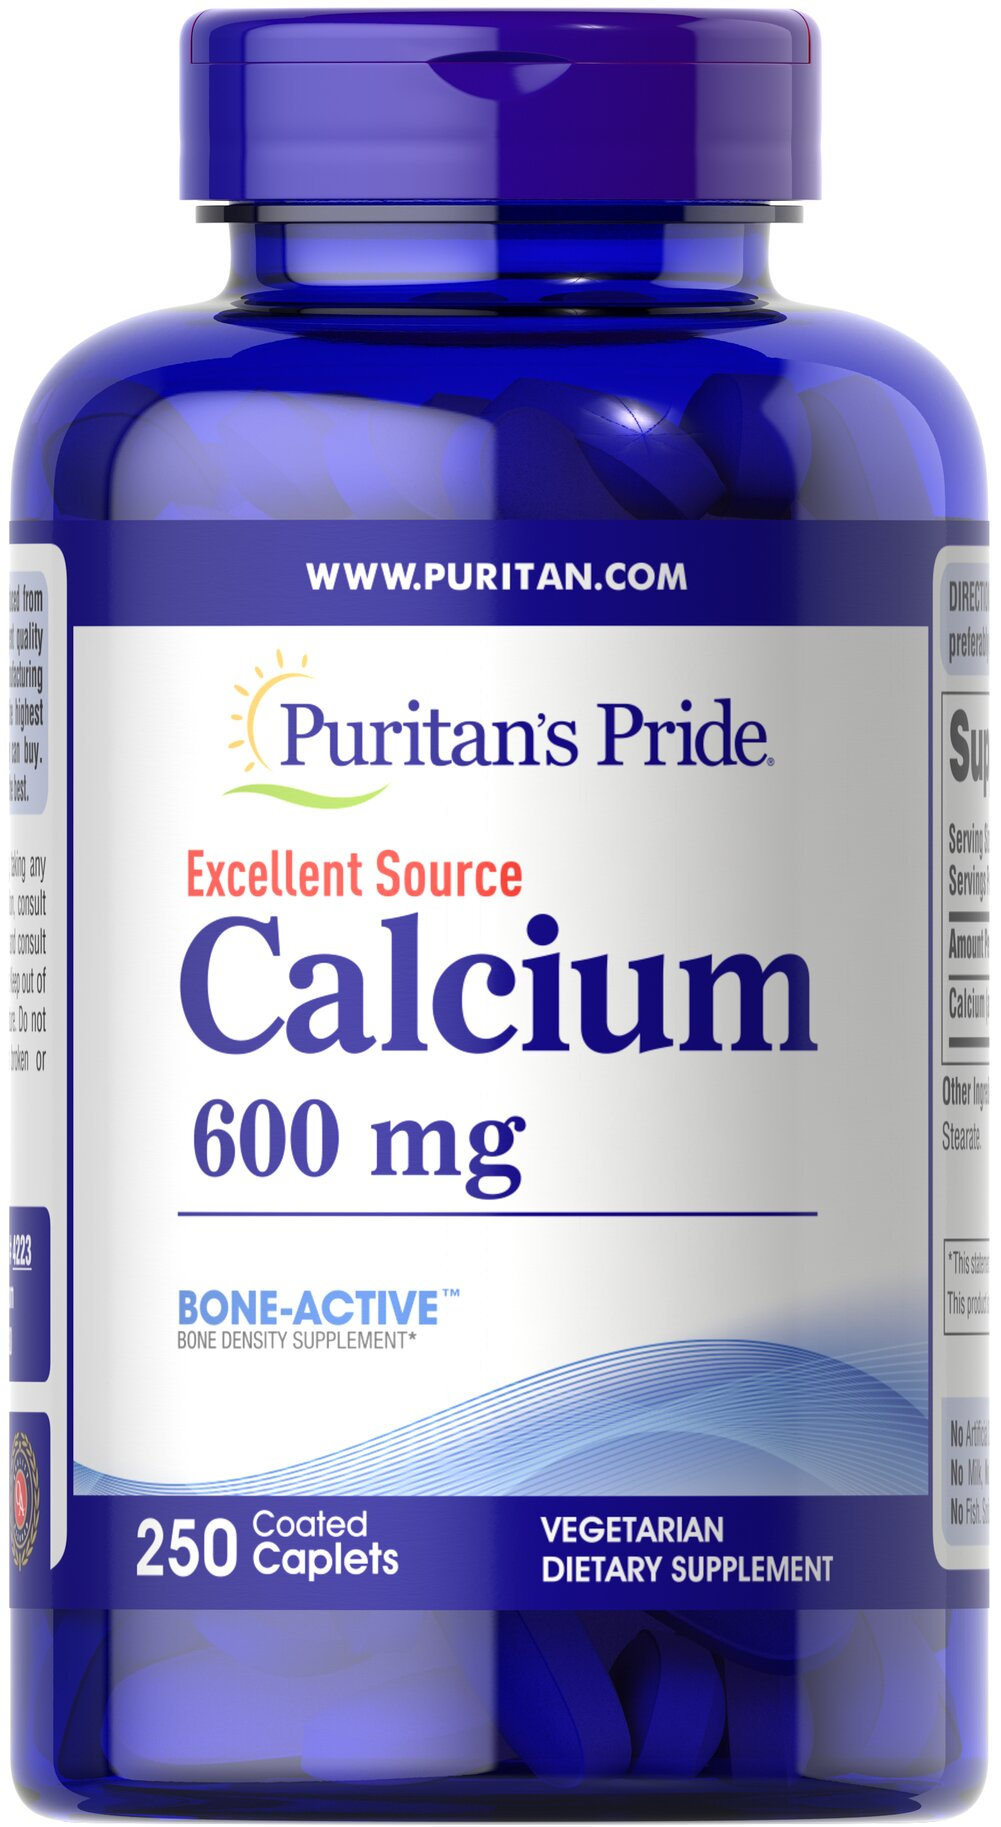 Calcium Carbonate 600 mg <p>Supports Bone Health**</p><p>Many factors contribute to the development of osteoporosis including sex, race, age, and hormonal status. It's important to remember that everyone loses bone mass with age. Regular exercise, a healthy diet and adequate Calcium intake helps maintain good bone health and may reduce the high risk of osteoporosis later in life.</p> 250 Caplets 600 mg $16.99